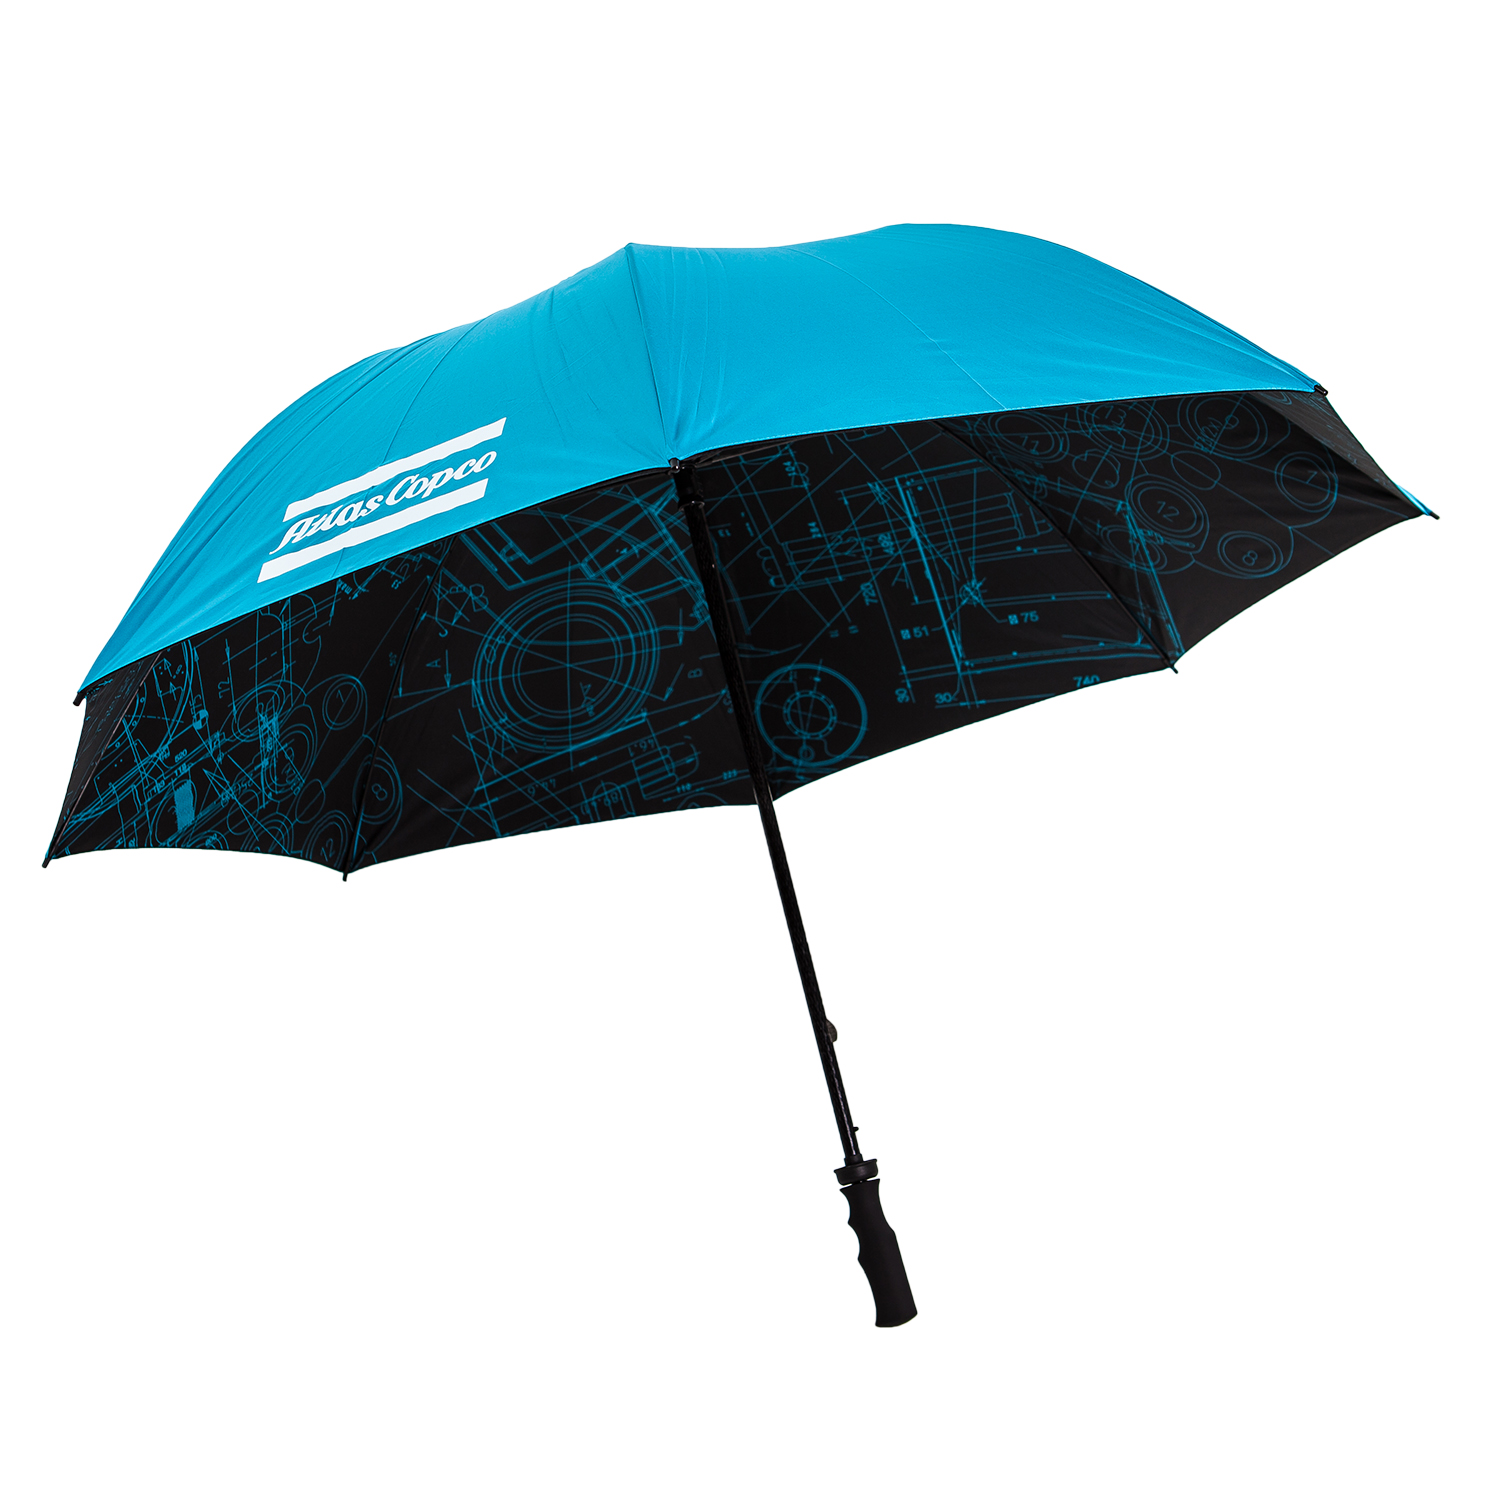 Umbrella made of recycled PET with fiber glass shaft and rubber handle, manual folding. Blueprint pattern on the inside and brand promise together with the Atlas Copco logo printed on one panel each. BluePrint is a pattern based on some of Atlas Copco's key innovations. By merging original blueprints from all business areas, a unique graphic pattern has been created.